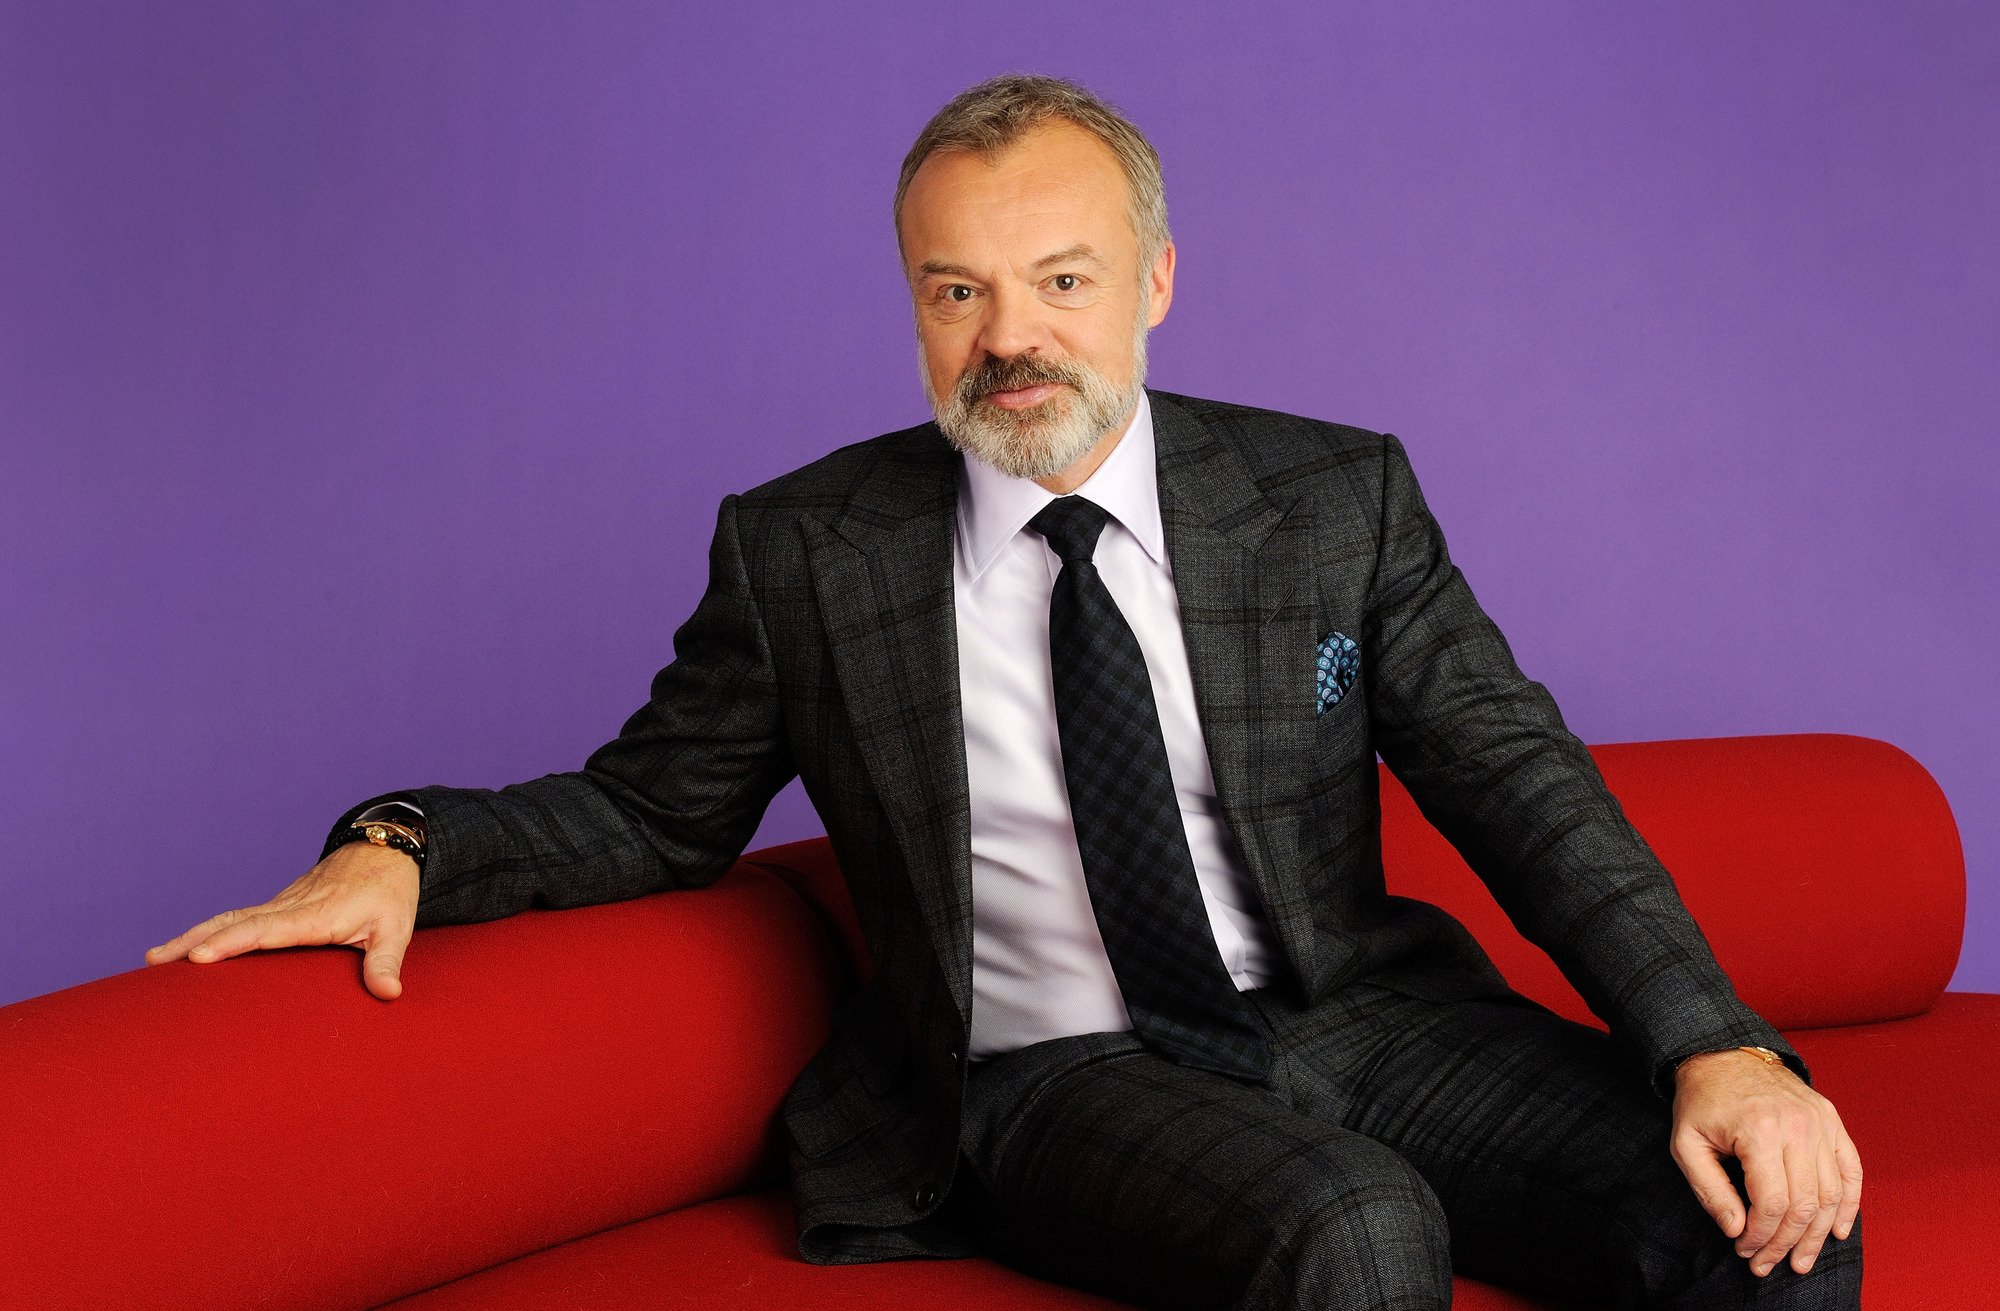 Graham Norton viewers beg the BBC to add 'canned laughter' for lockdown episodes